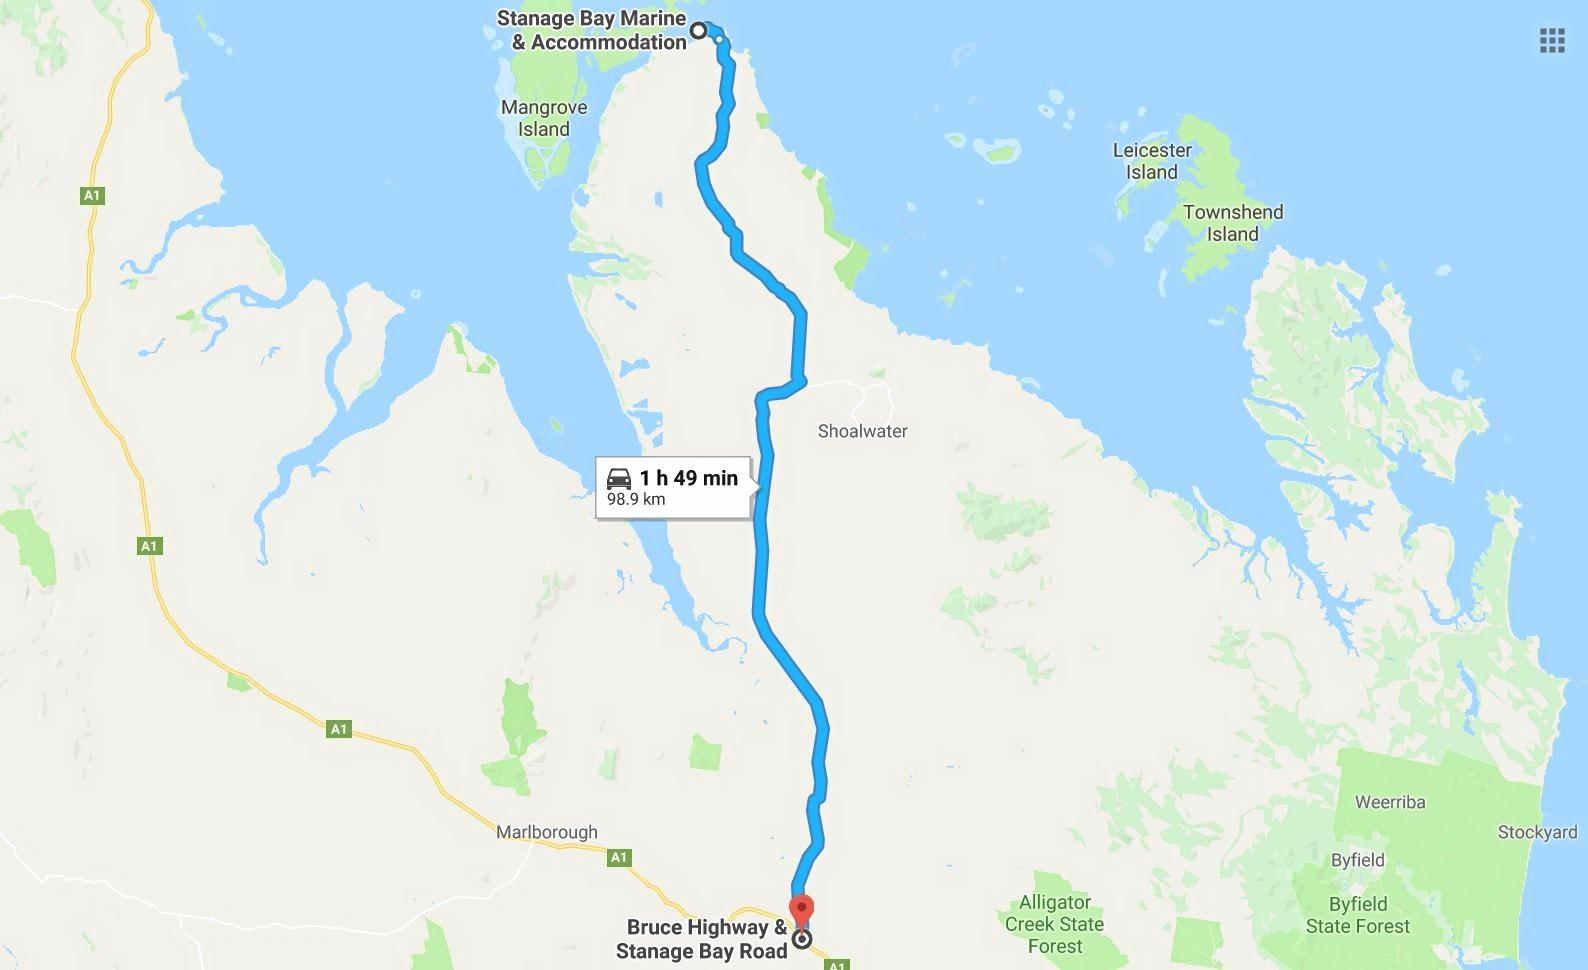 ROAD MAP: Stanage Bay Road is almost 100km in length from the coast to the Bruce Highway with travel times depending upon the condition of the dirt road.